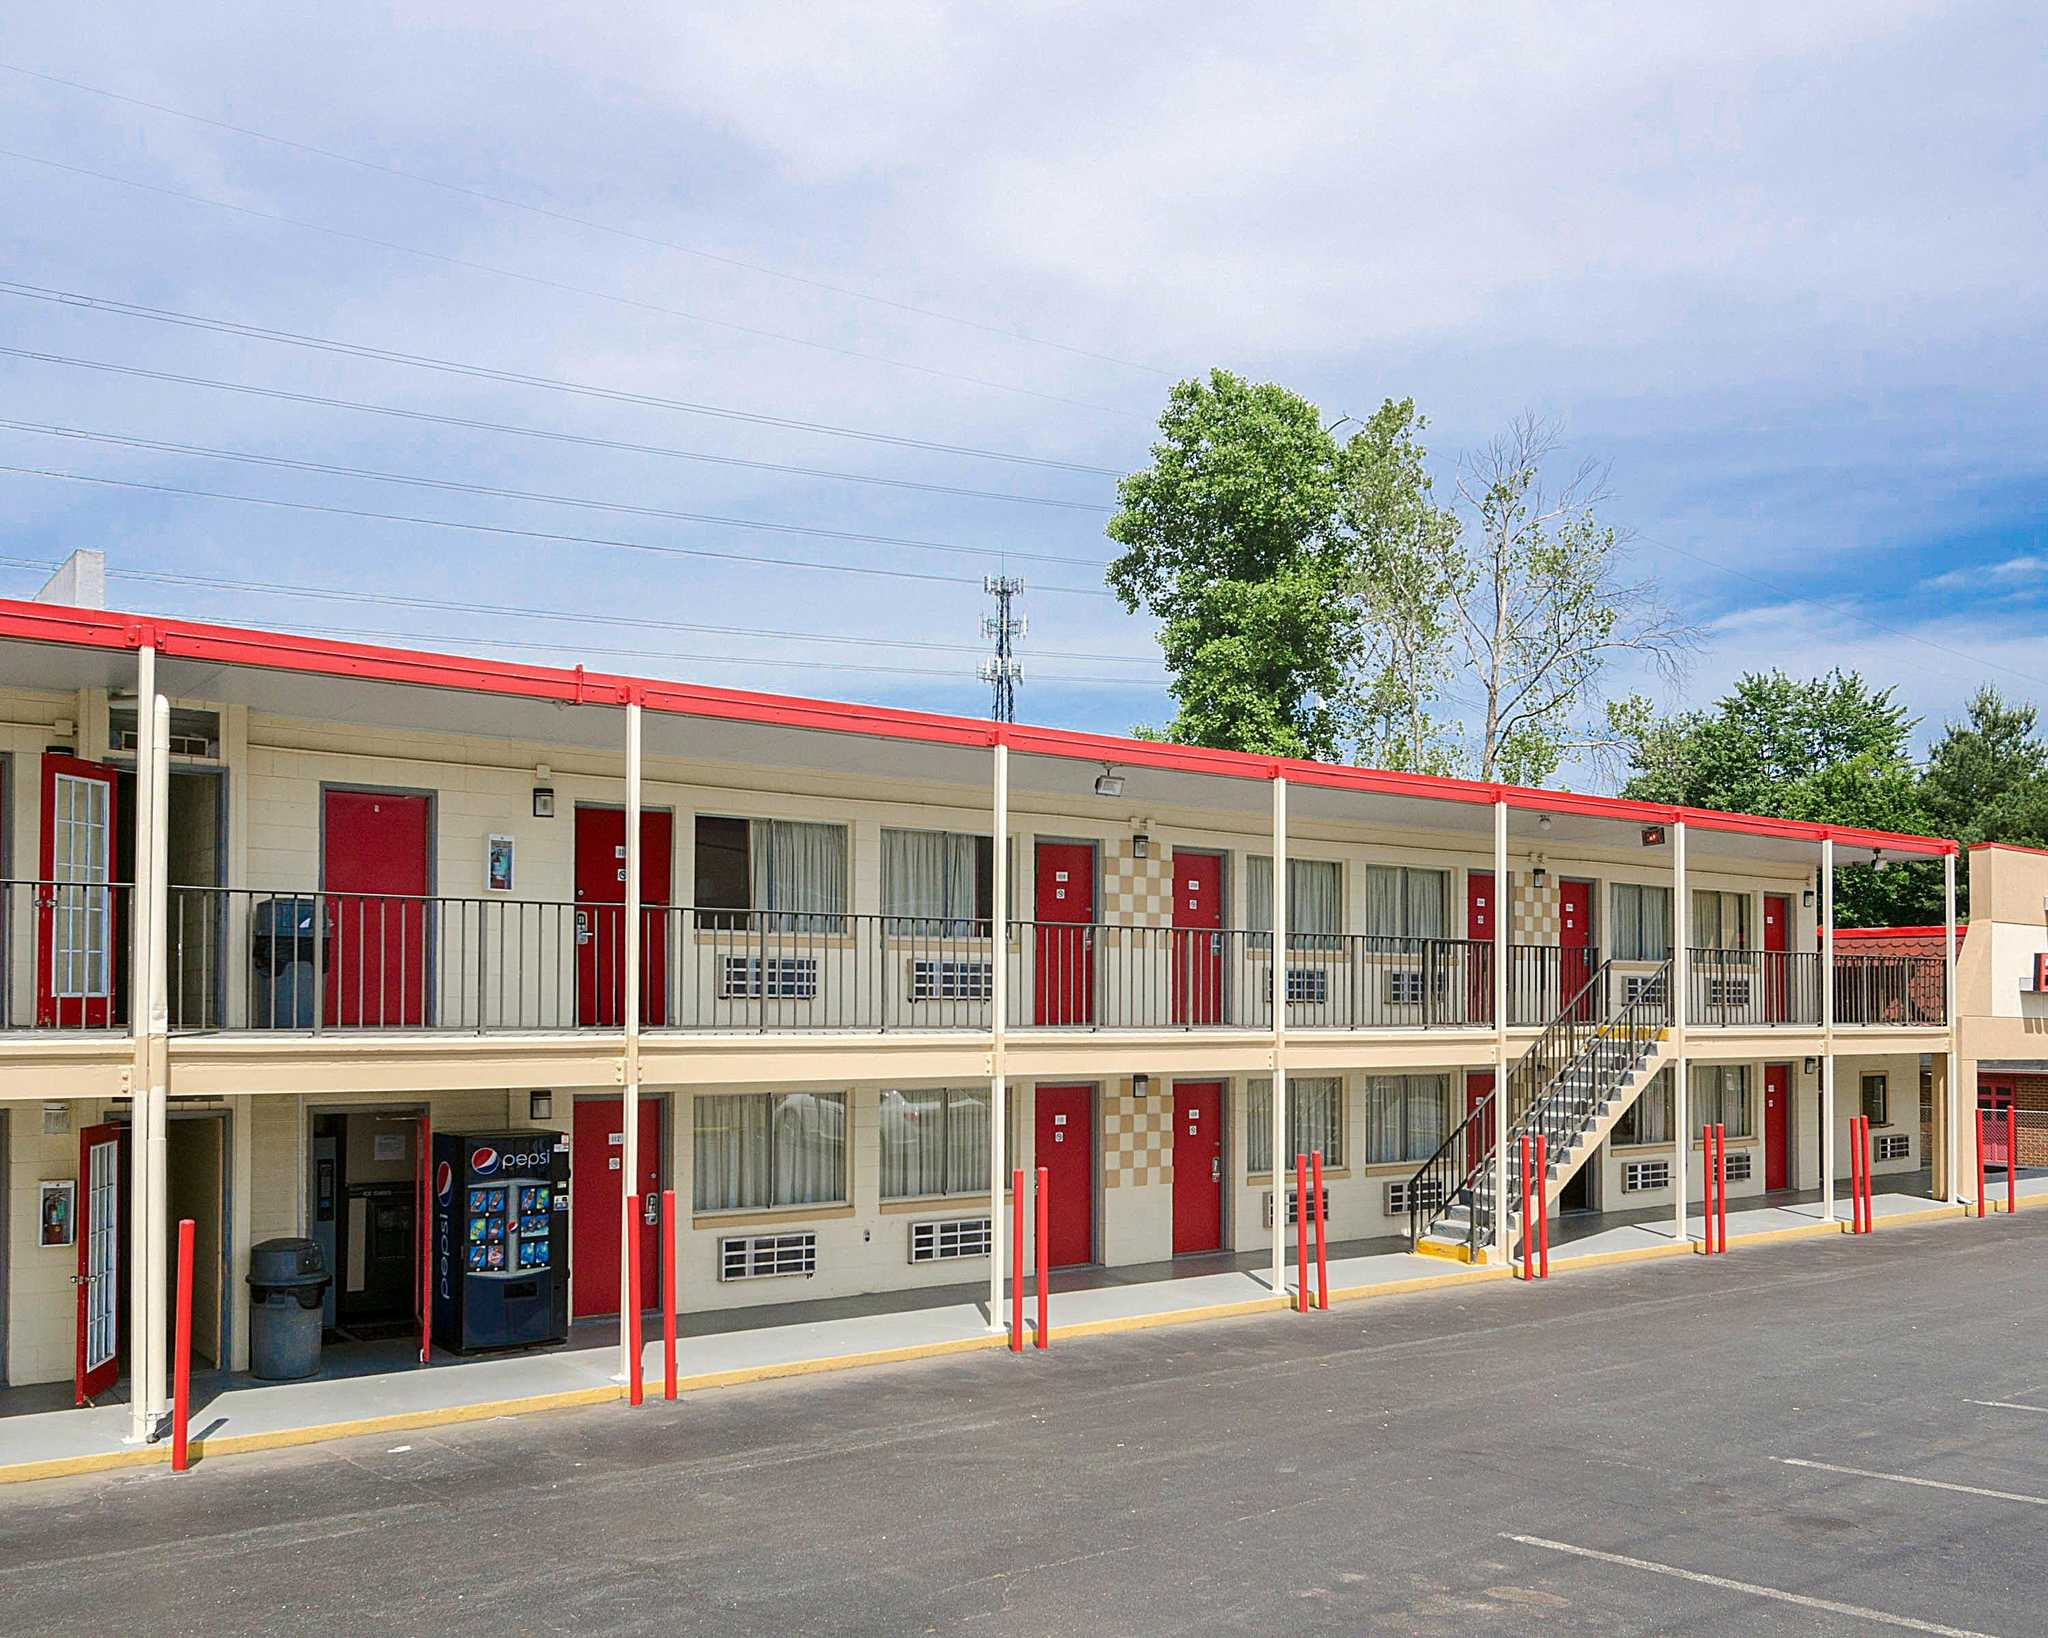 Econo Lodge North image 3